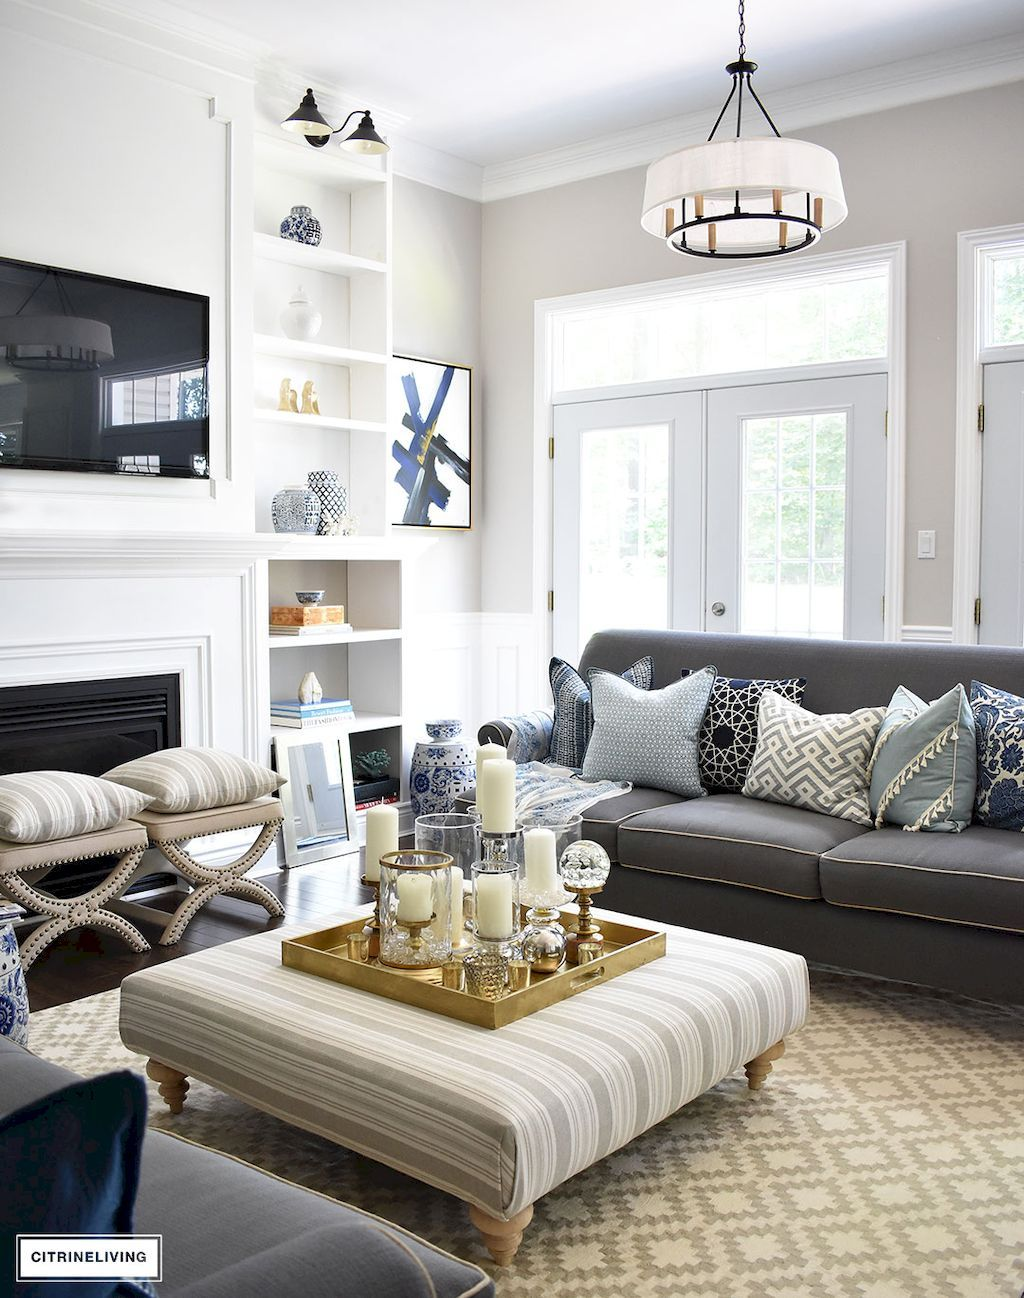 Gorgeous 50 Rustic Farmhouse Living Room Design And Decoration Ideas Homearchite